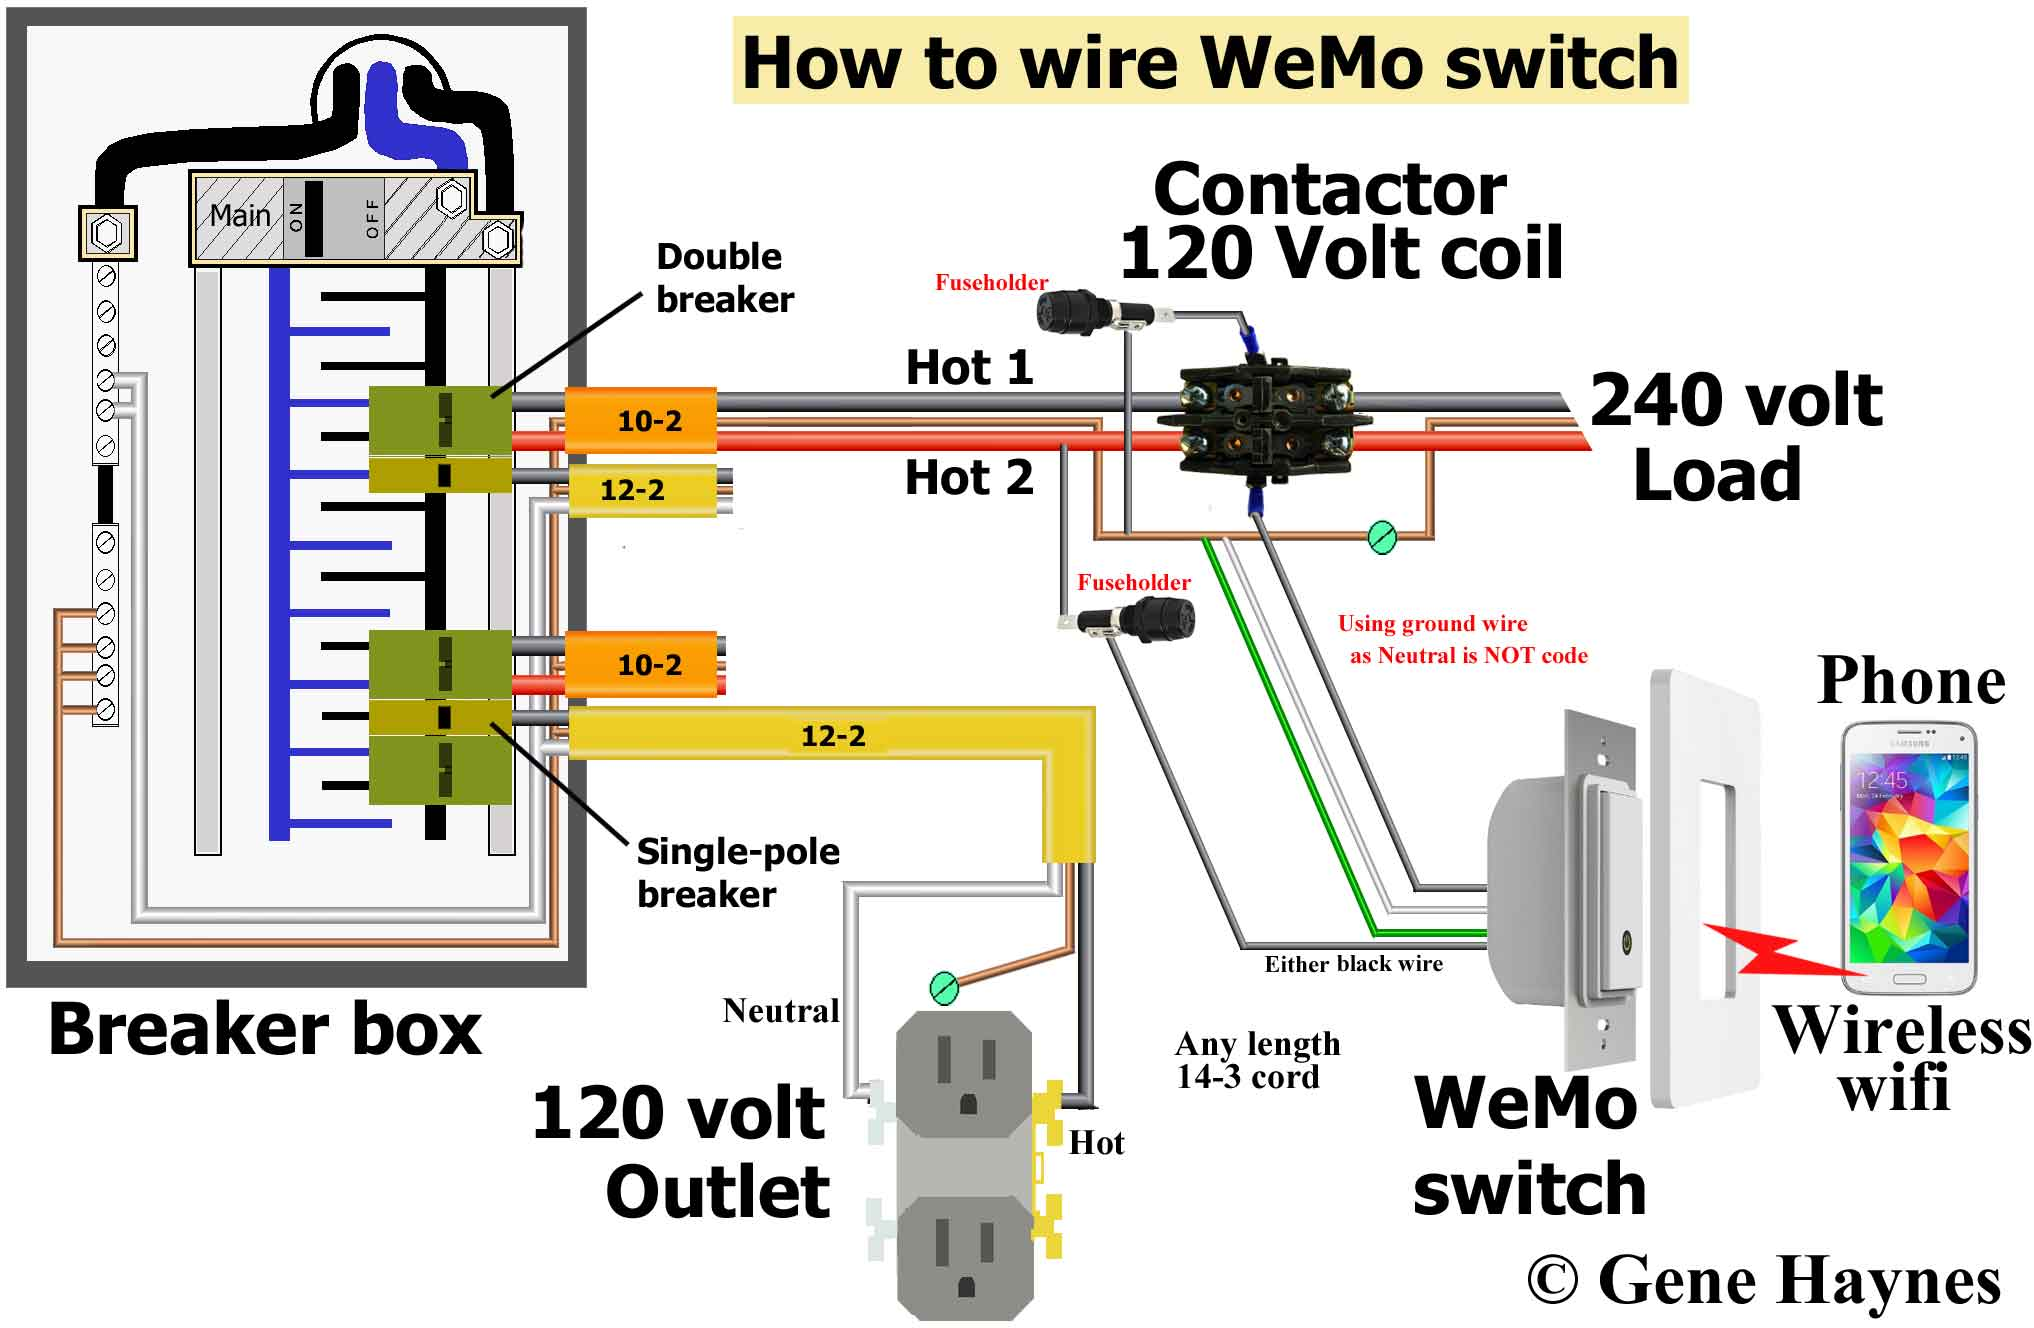 110 volt relay diagram data wiring diagram update 220 volt plug wiring diagram 110 volt wire relay diagram wiring diagram 220 outlet wiring diagram 110 volt relay diagram